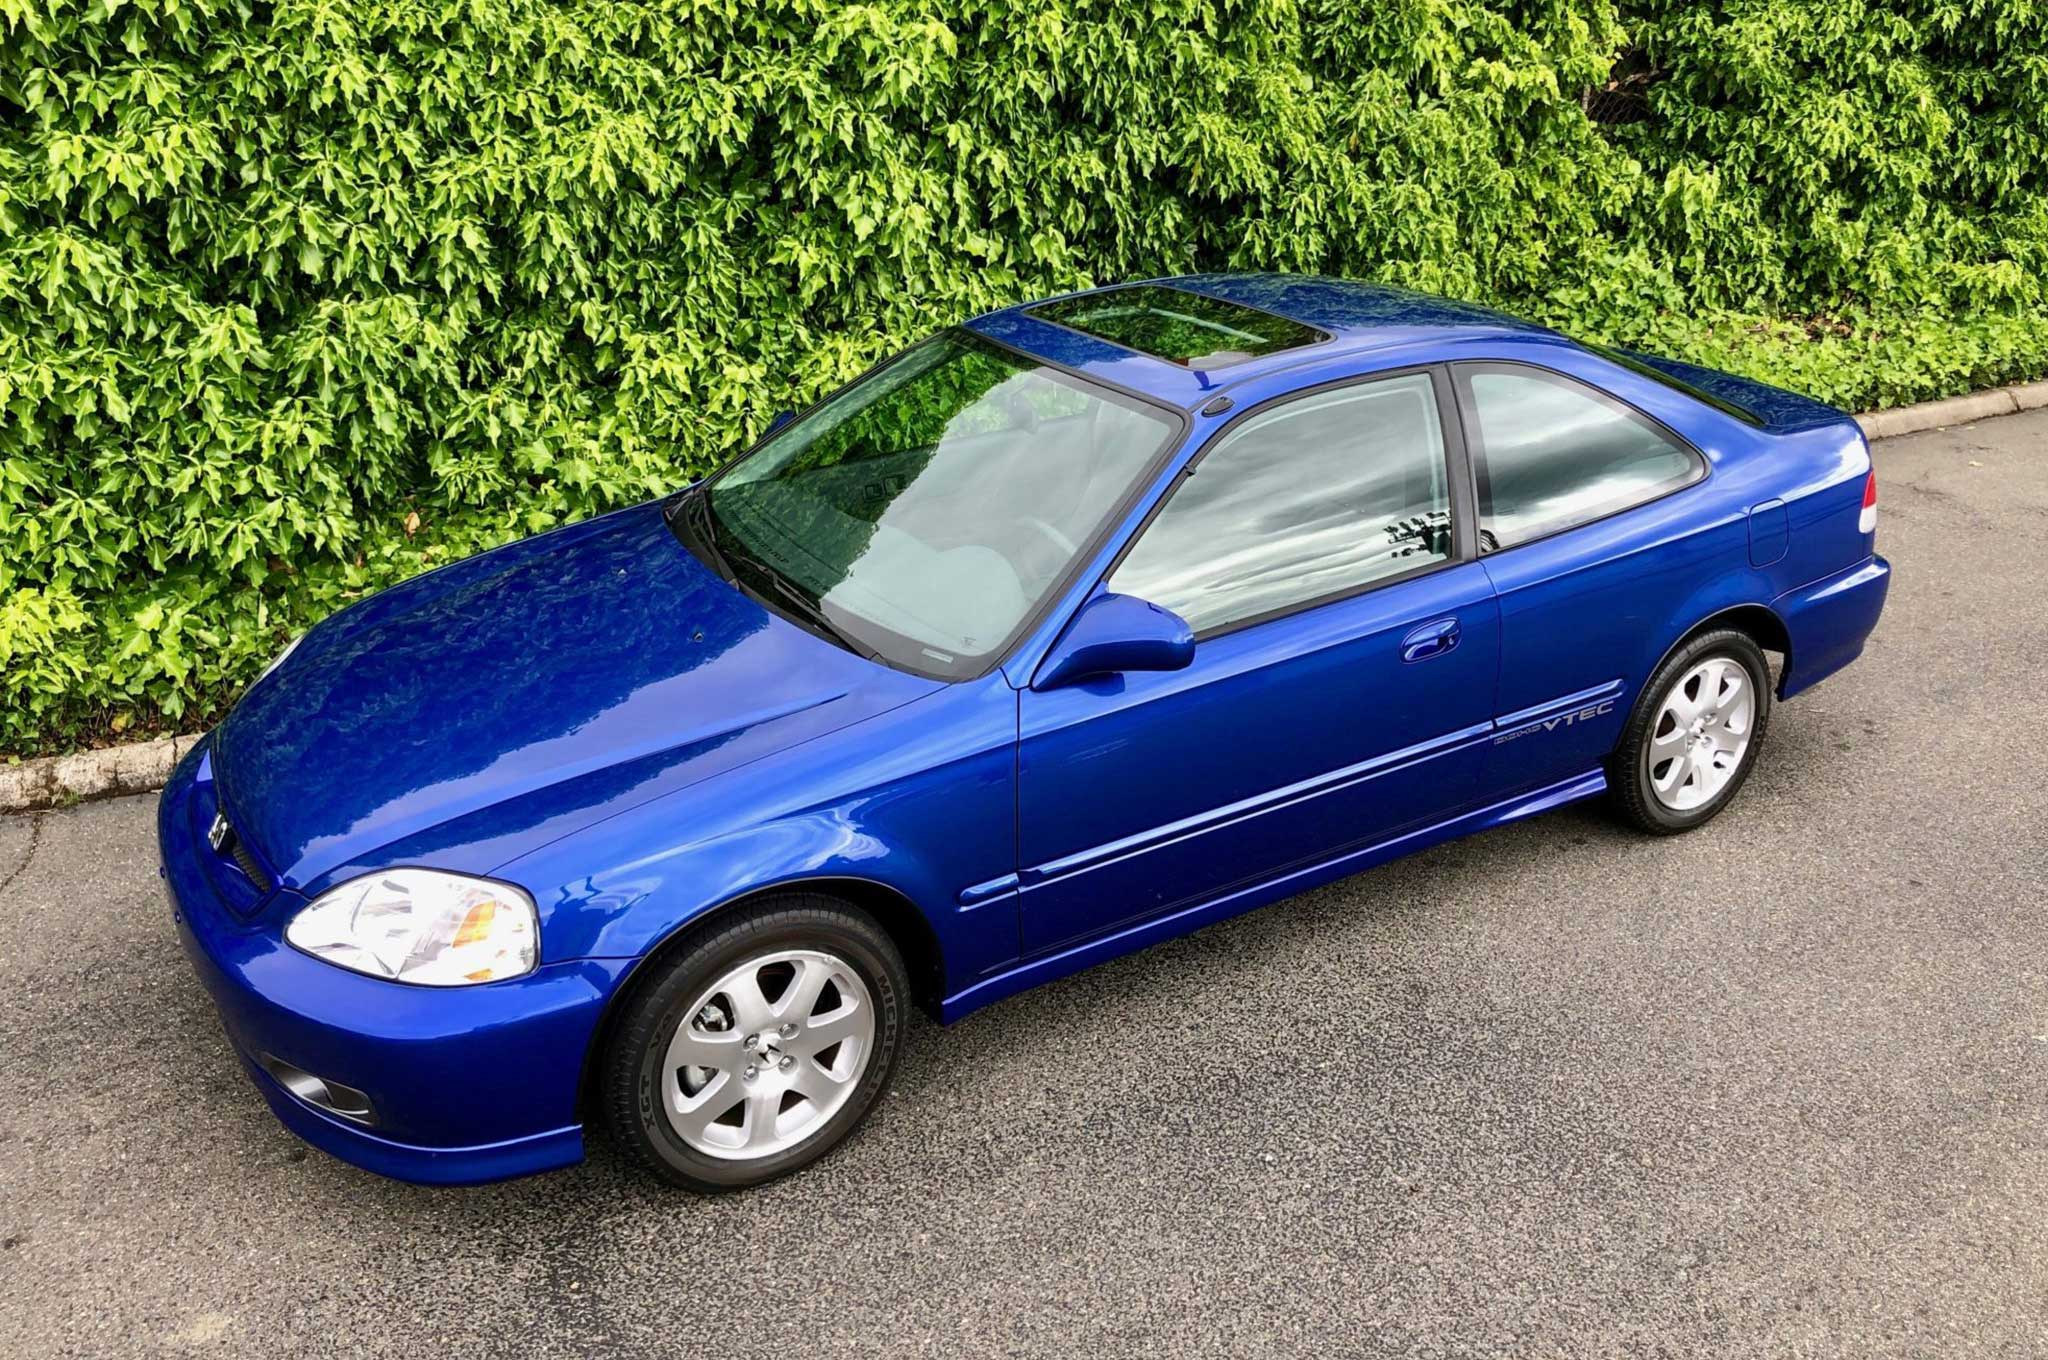 20 Year Old Honda Civic Si Sells For 50 000